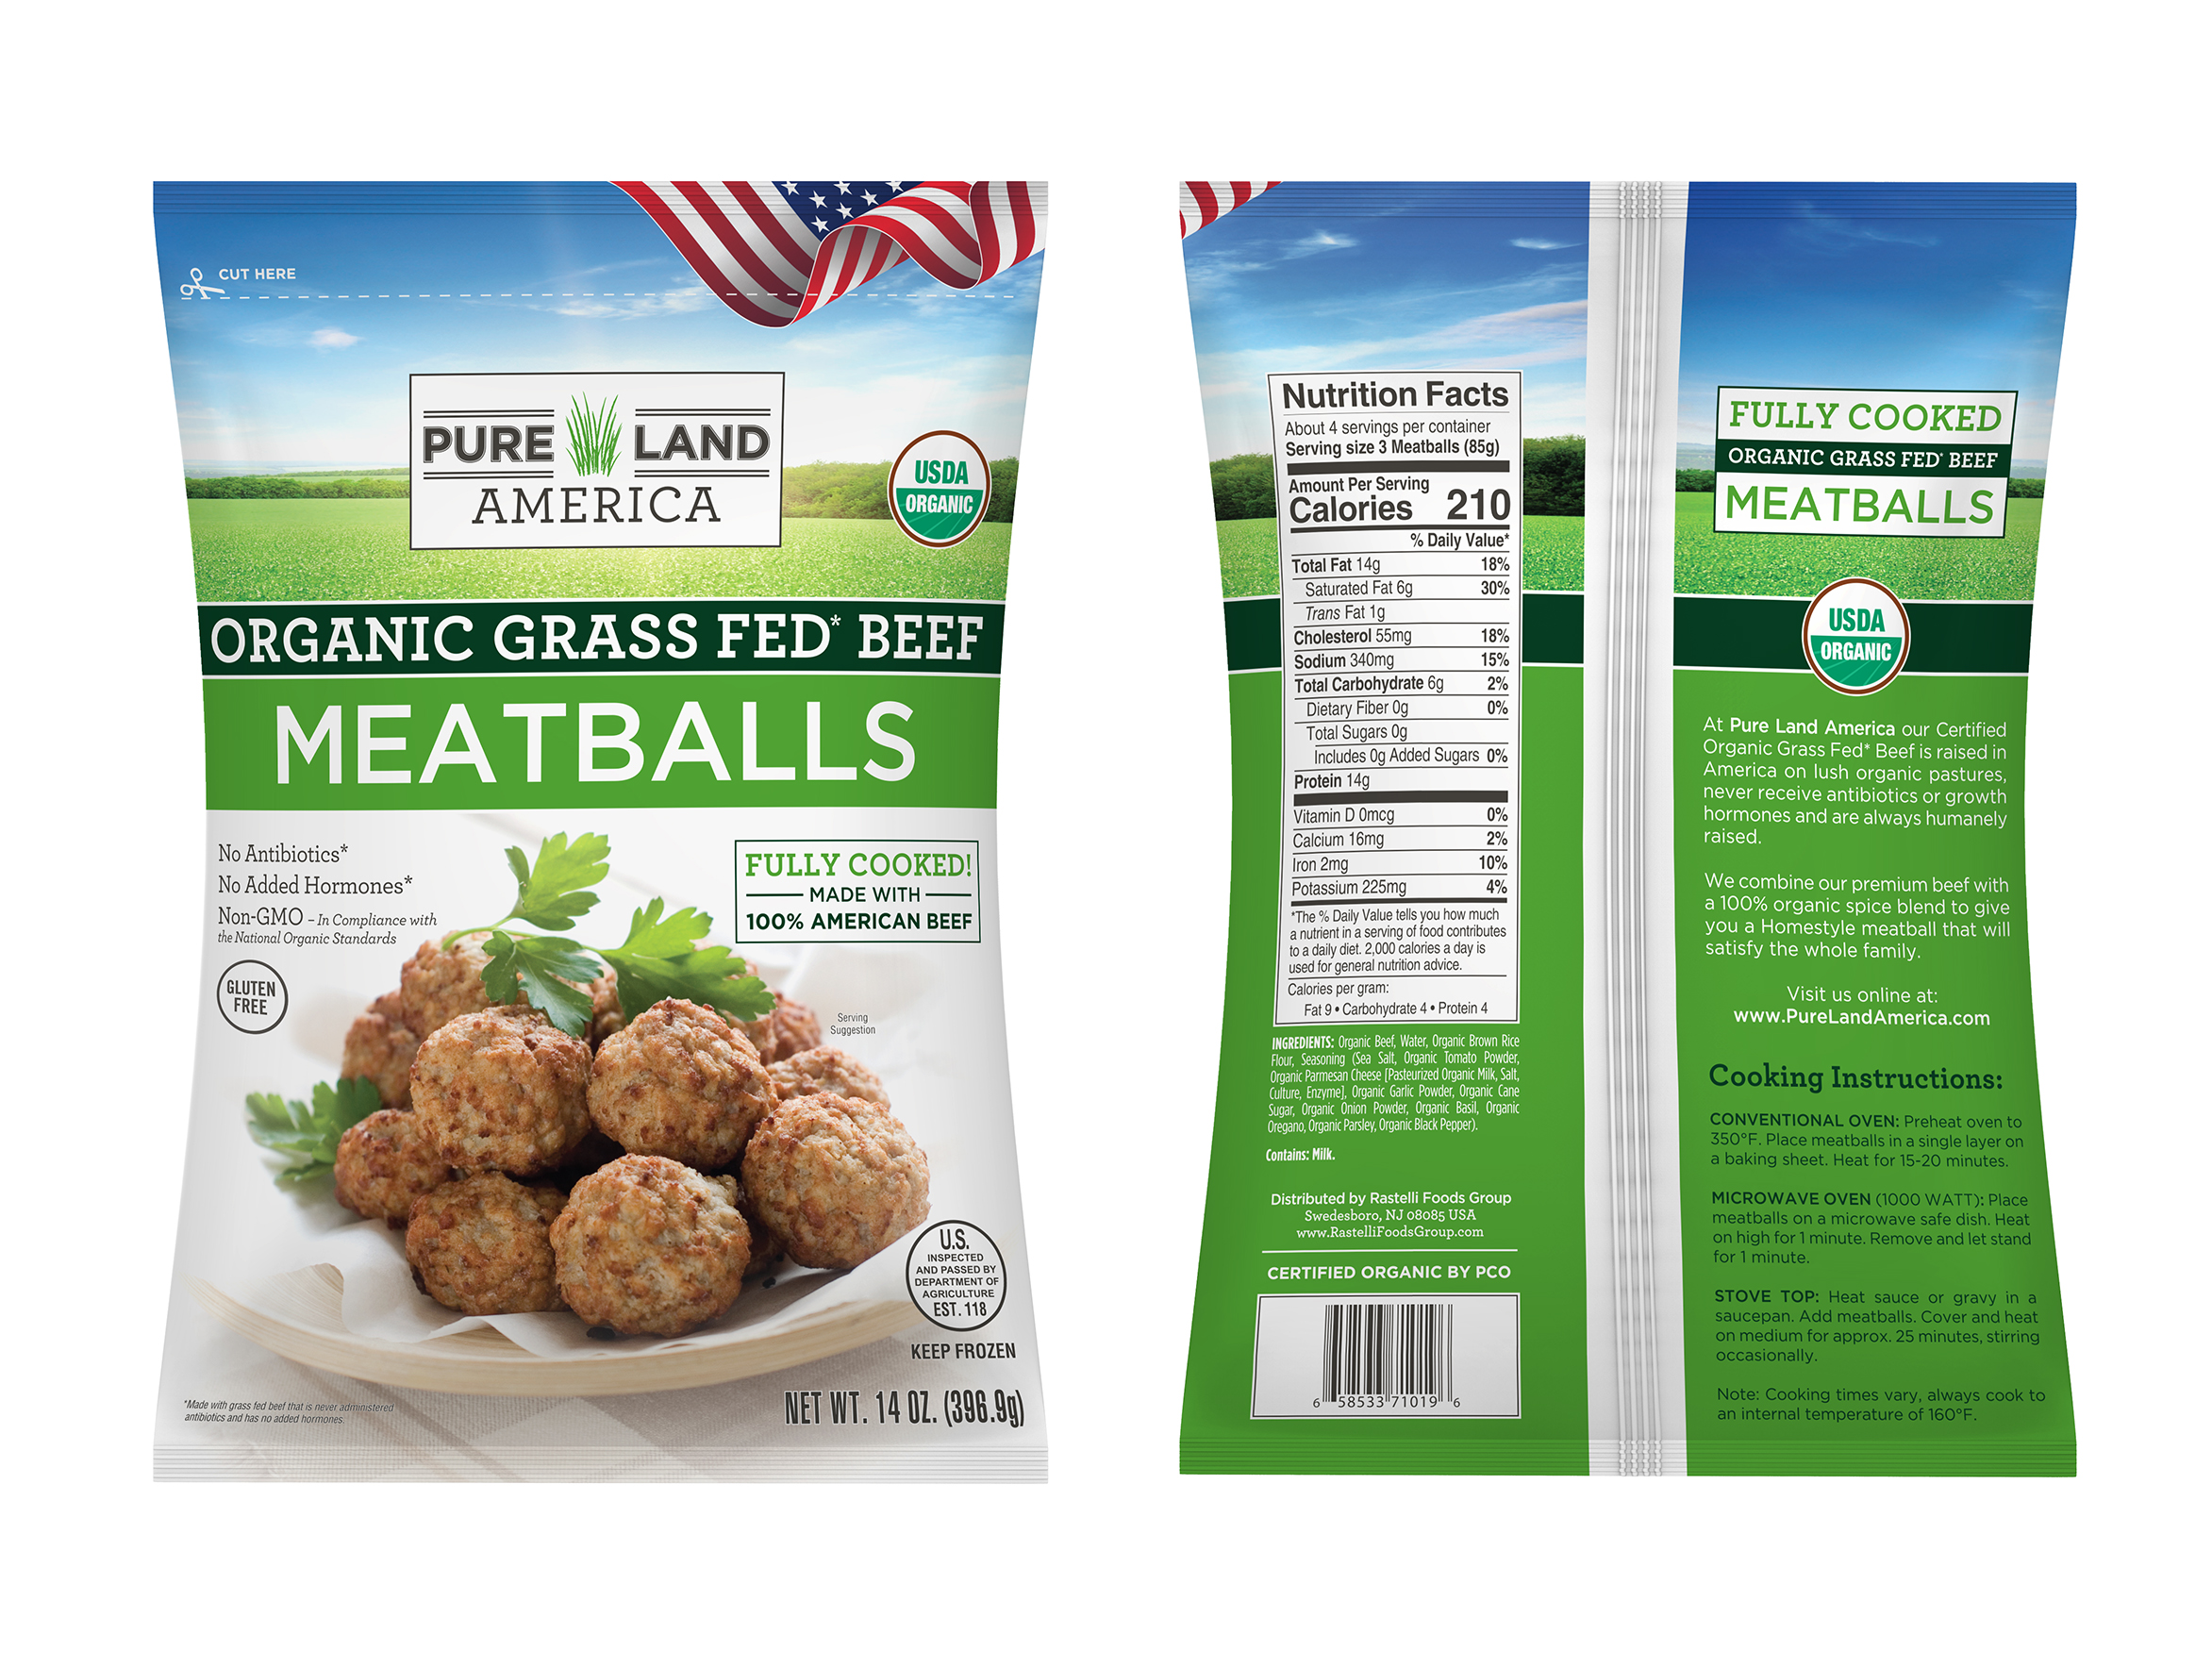 organic grass fed meatballs nutritional facts for diet